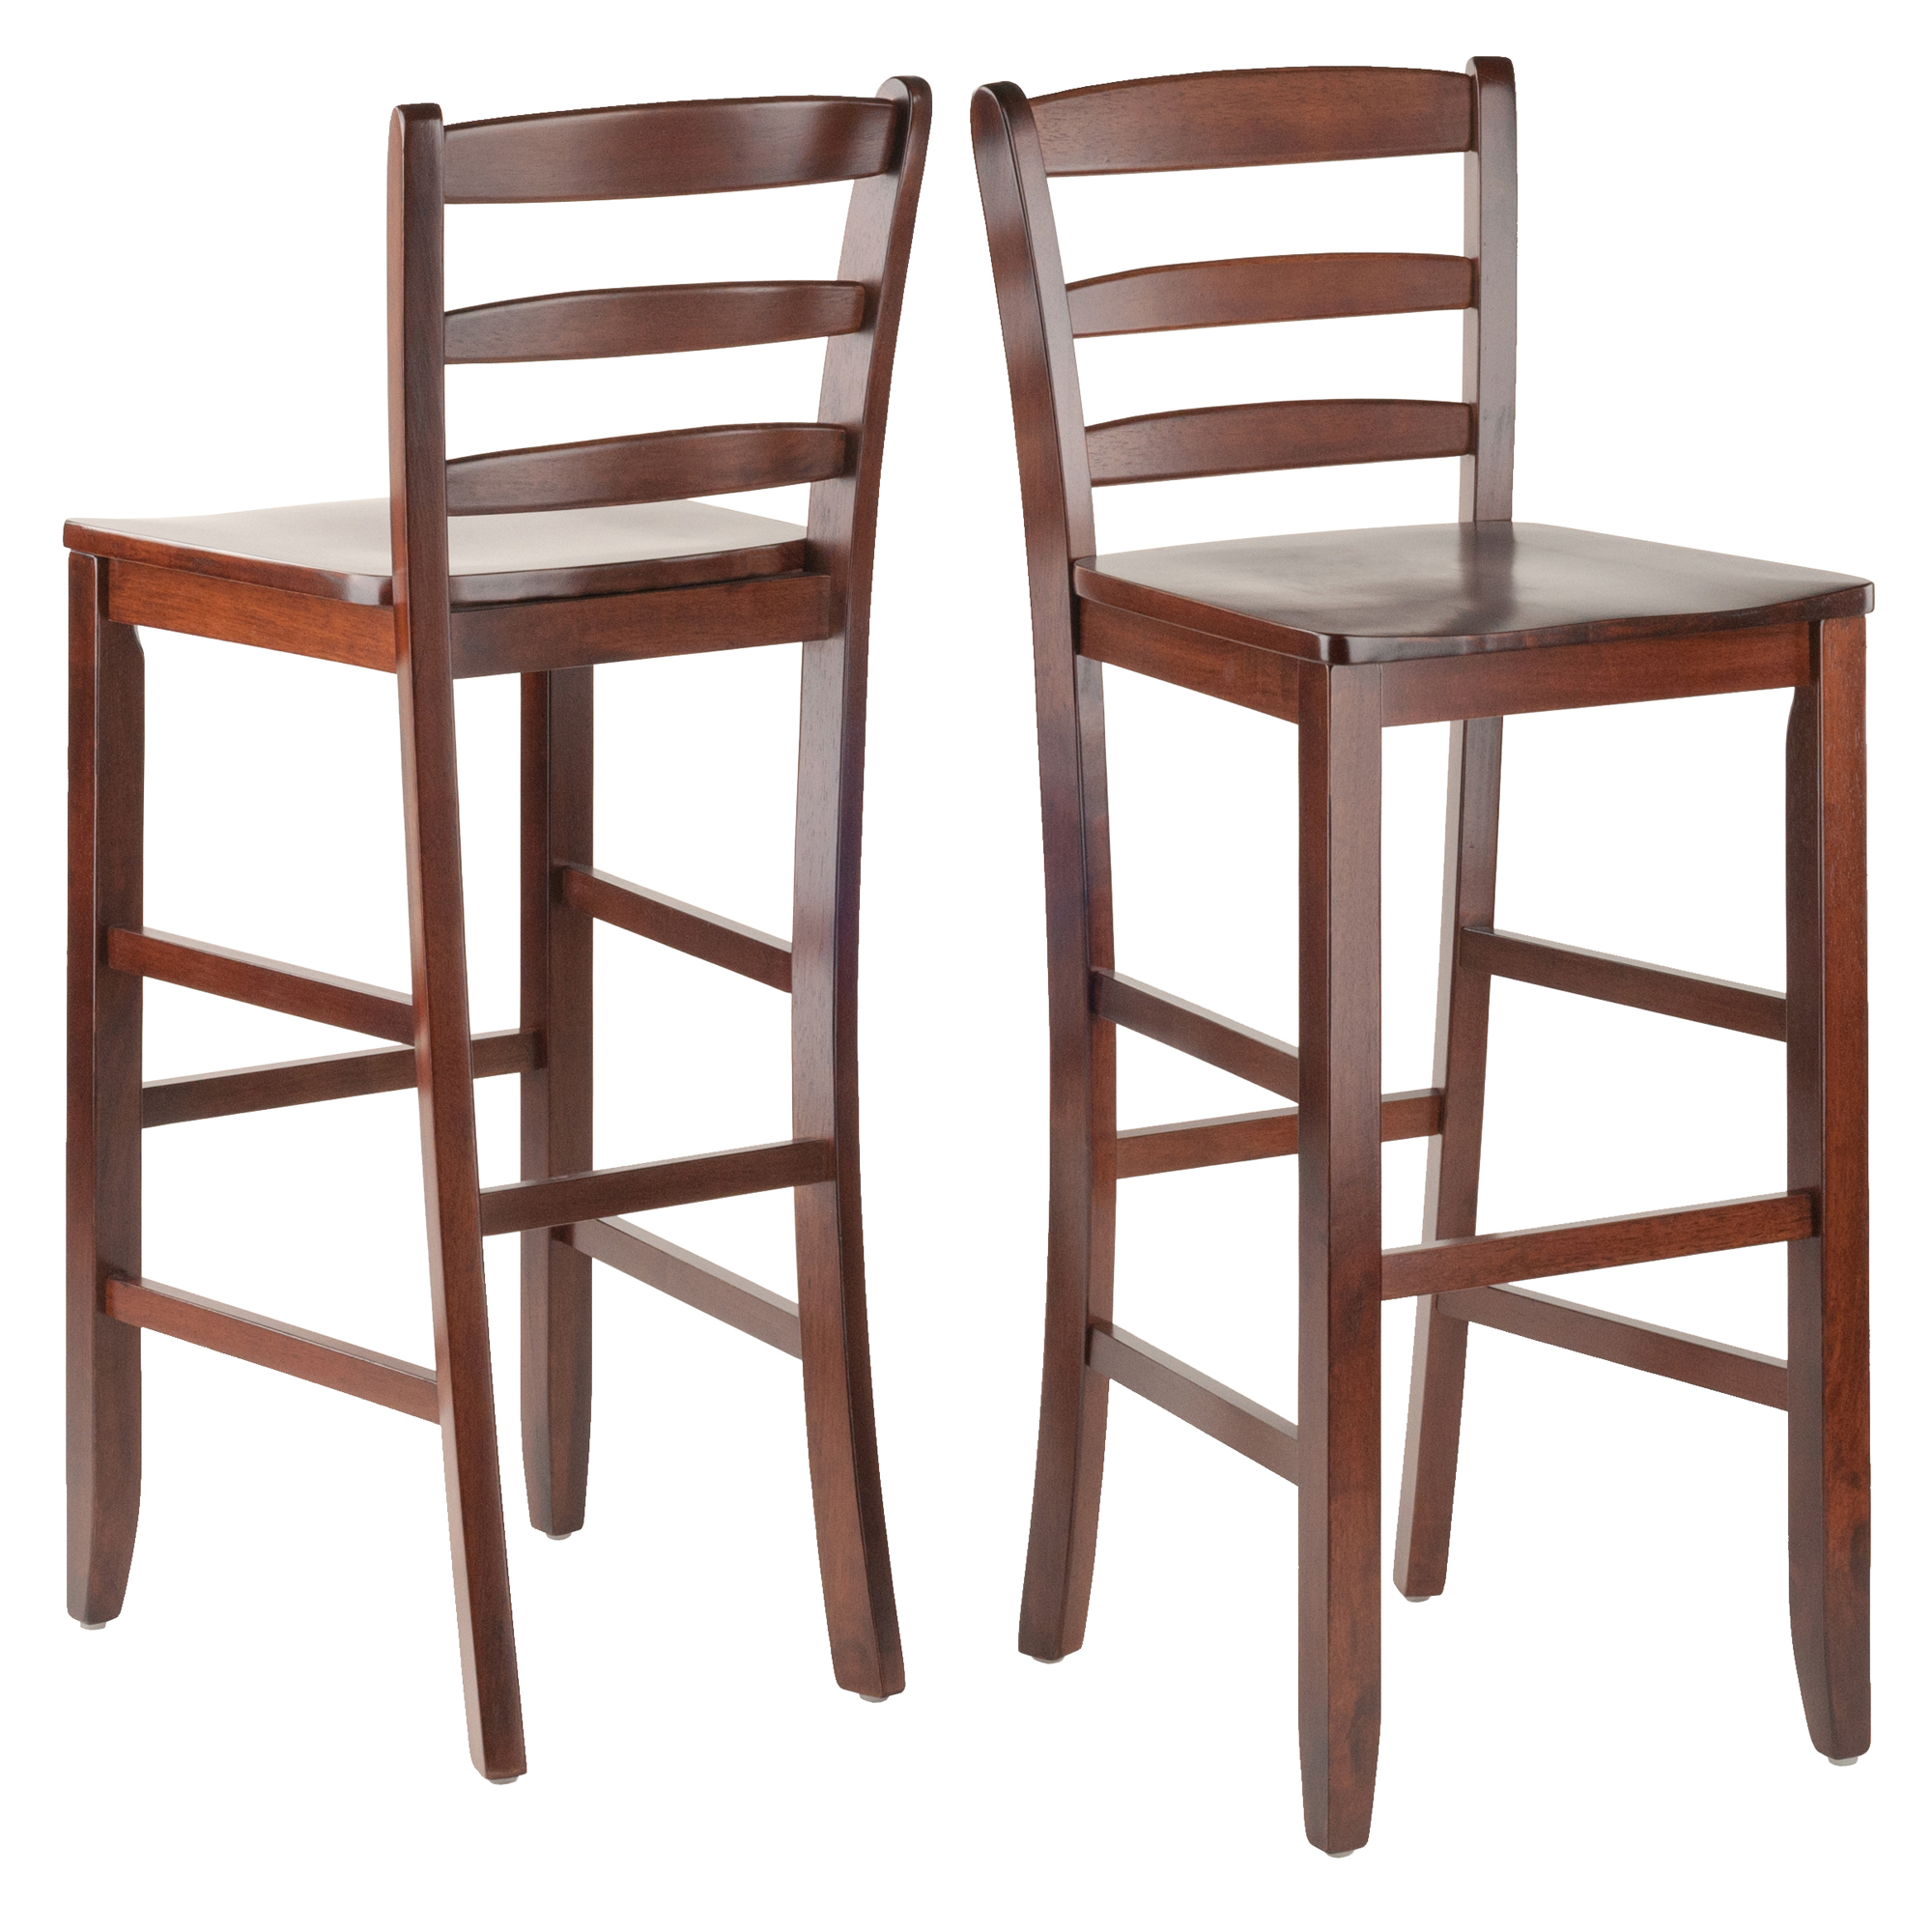 Winsome Wood Benjamin Ladder-Back Bar Stools, Set of 2, Walnut Finish